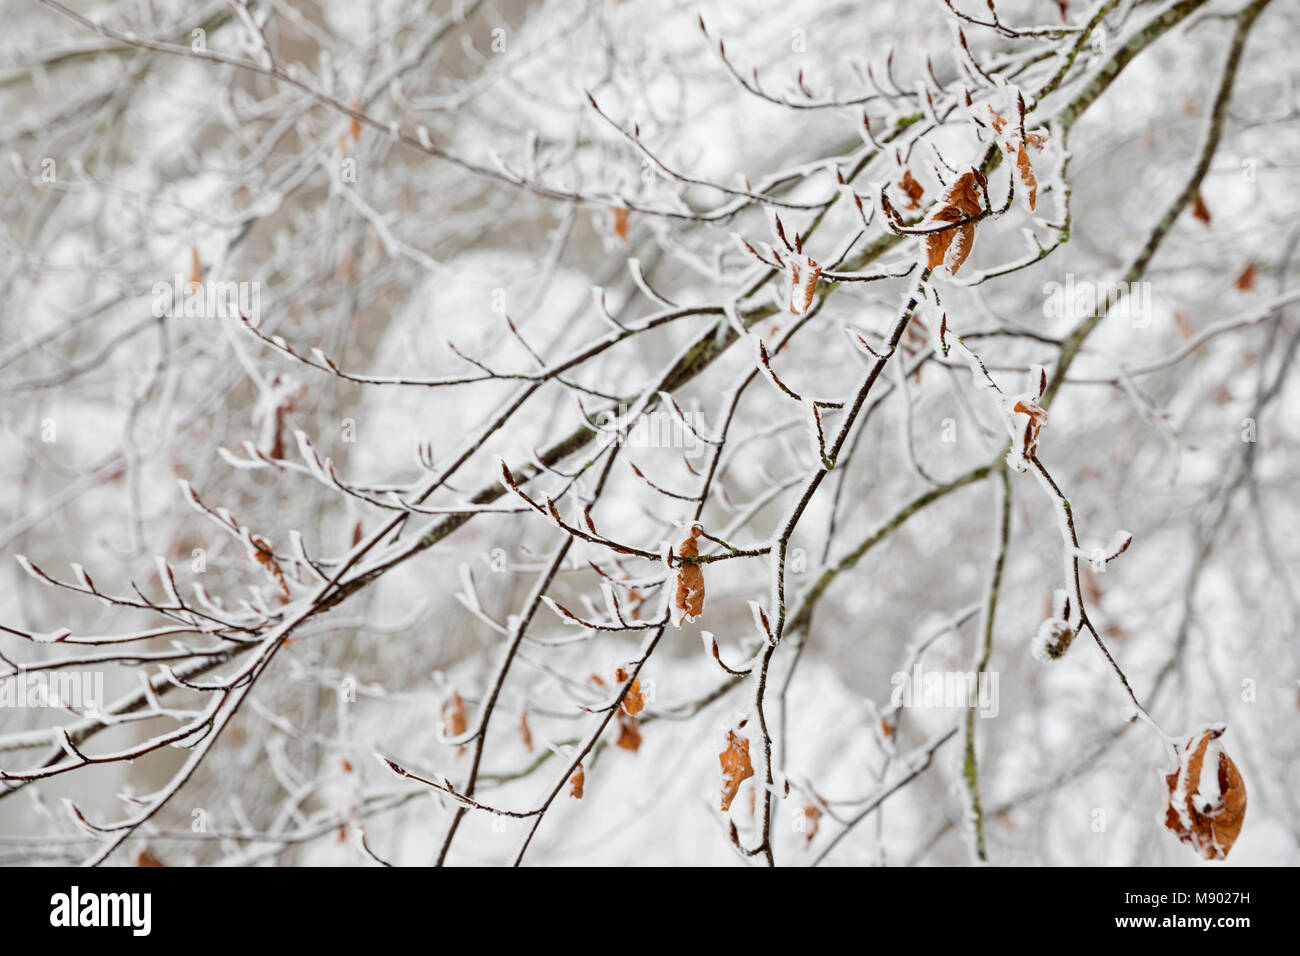 Frozen tree branches, Chipping Campden, The Cotswolds, Gloucestershire, England, United Kingdom, Europe - Stock Image